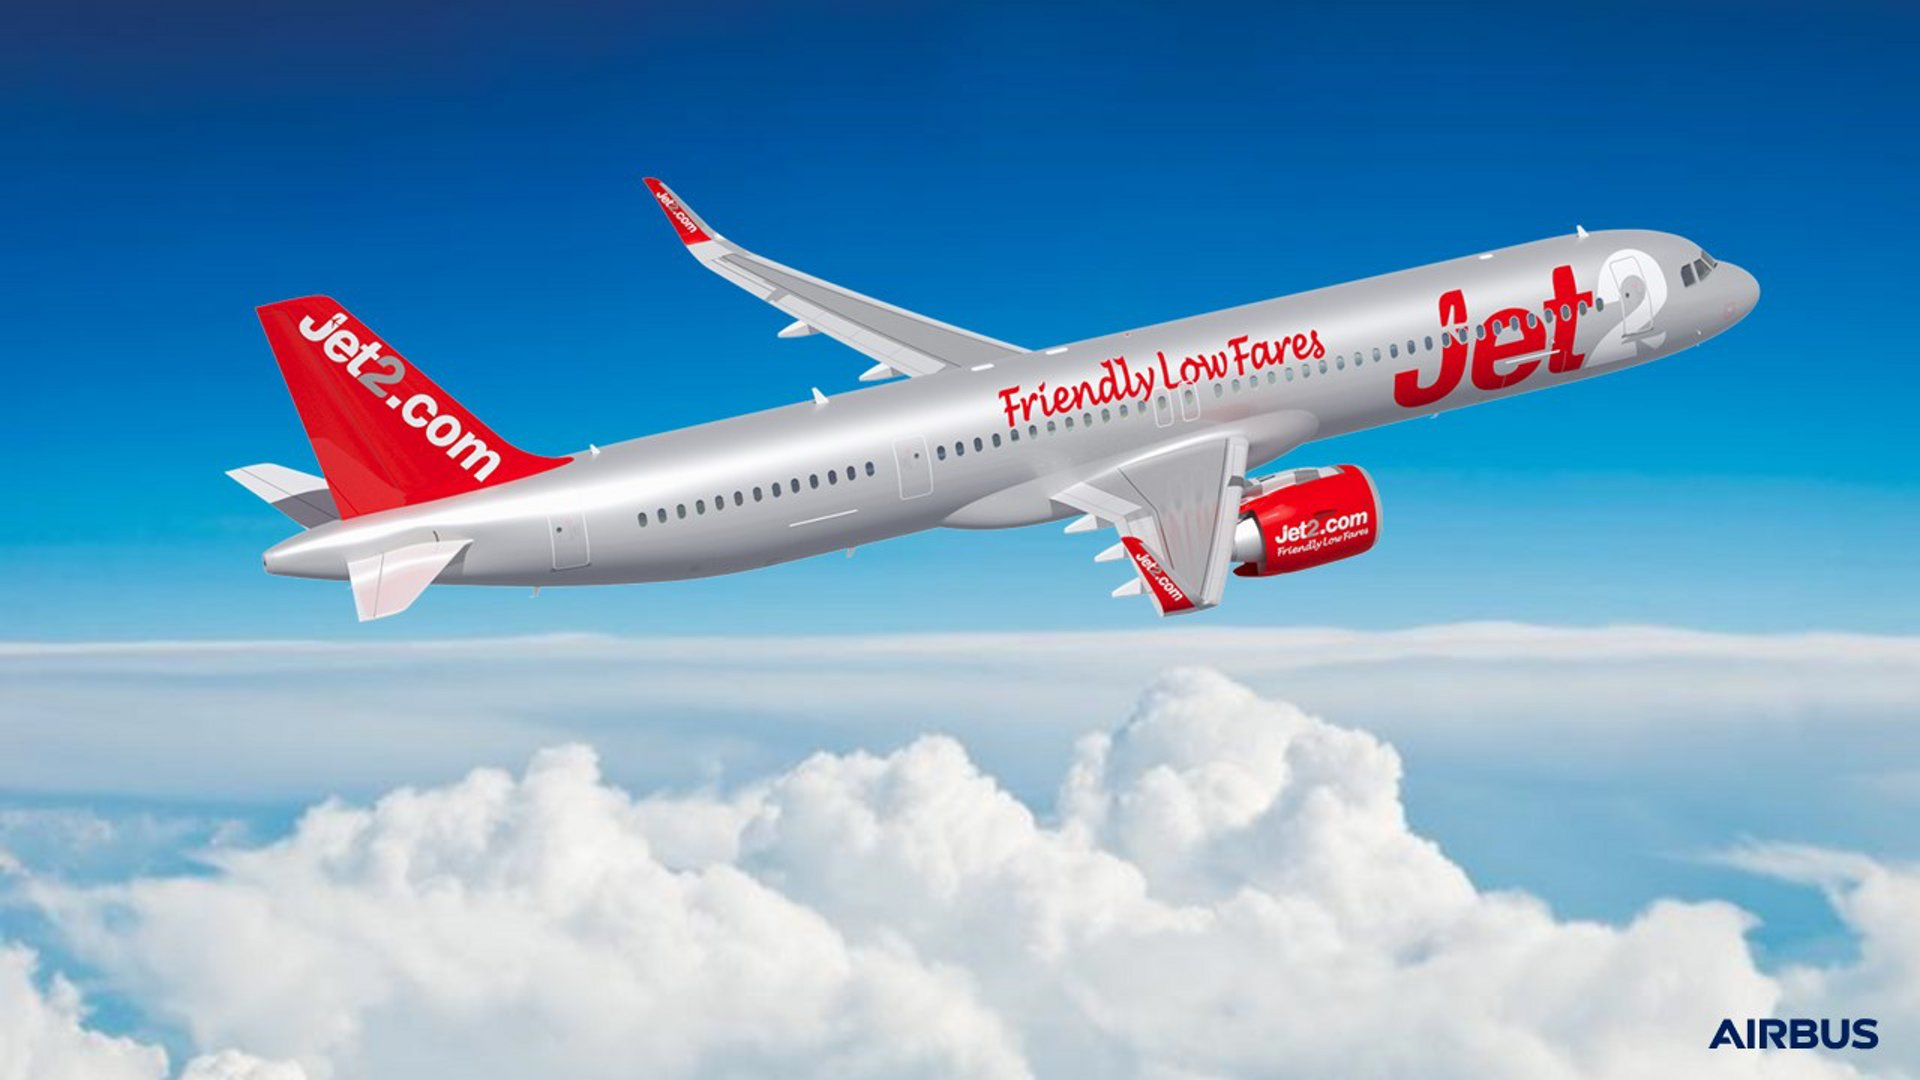 Jet2.com has placed an initial order for 36 A321neos making the airline based in Leeds, United Kingdom, a new Airbus customer and a new Airbus A320neo Family operator.